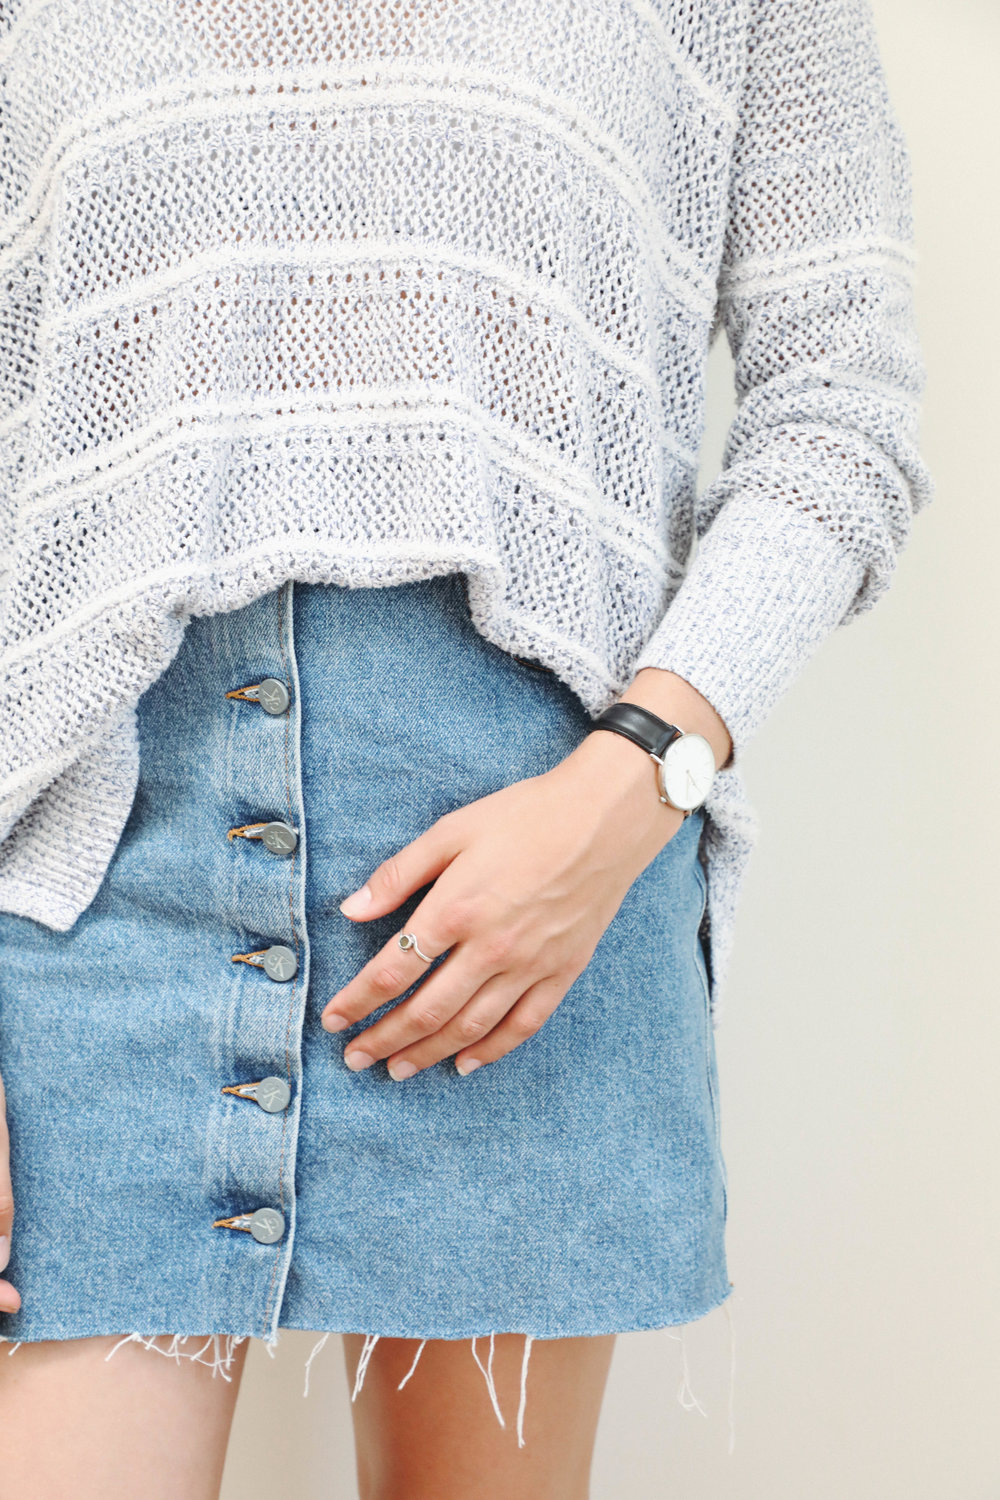 to-be-magnetic-jean-skirt-lila-elements